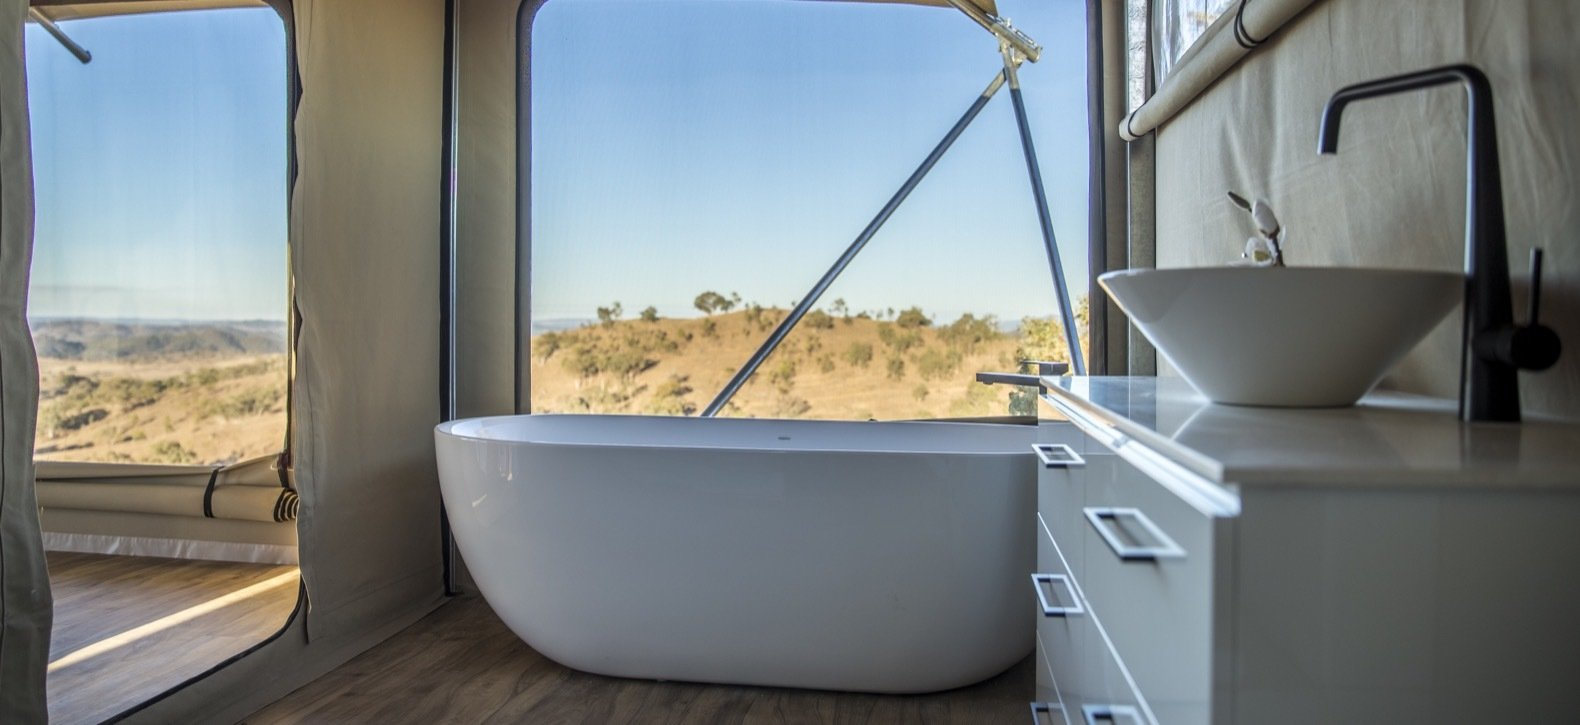 Bath Room, Freestanding Tub, Medium Hardwood Floor, and Vessel Sink The interior freestanding bath in the Uralla.  Photo 10 of 11 in Escape to the Australian Bush in Style With These Eco-Friendly, Luxe Tents